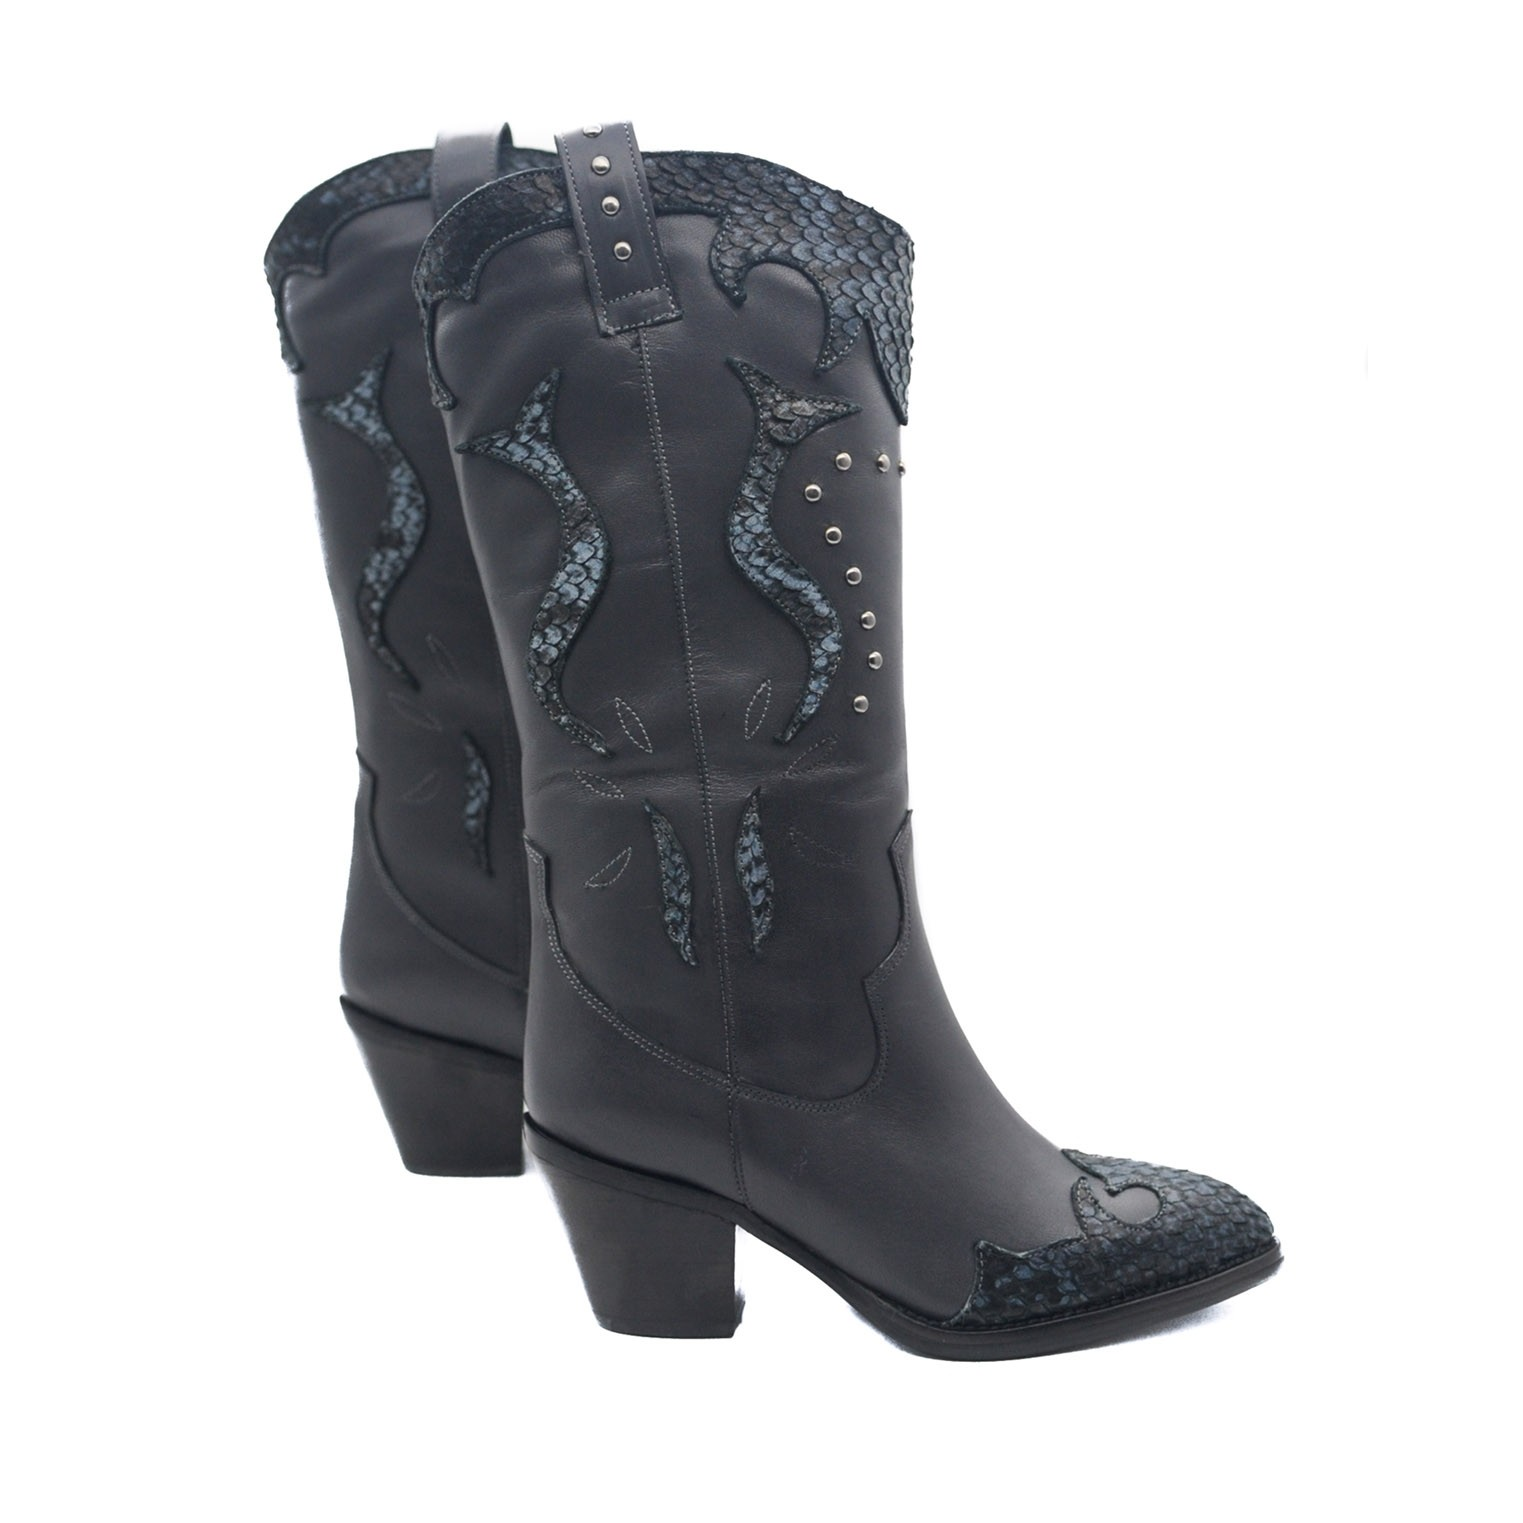 Western Style Block Heel Pull on Leather Boots With Silver Studs and Gorgeous Embellished Details